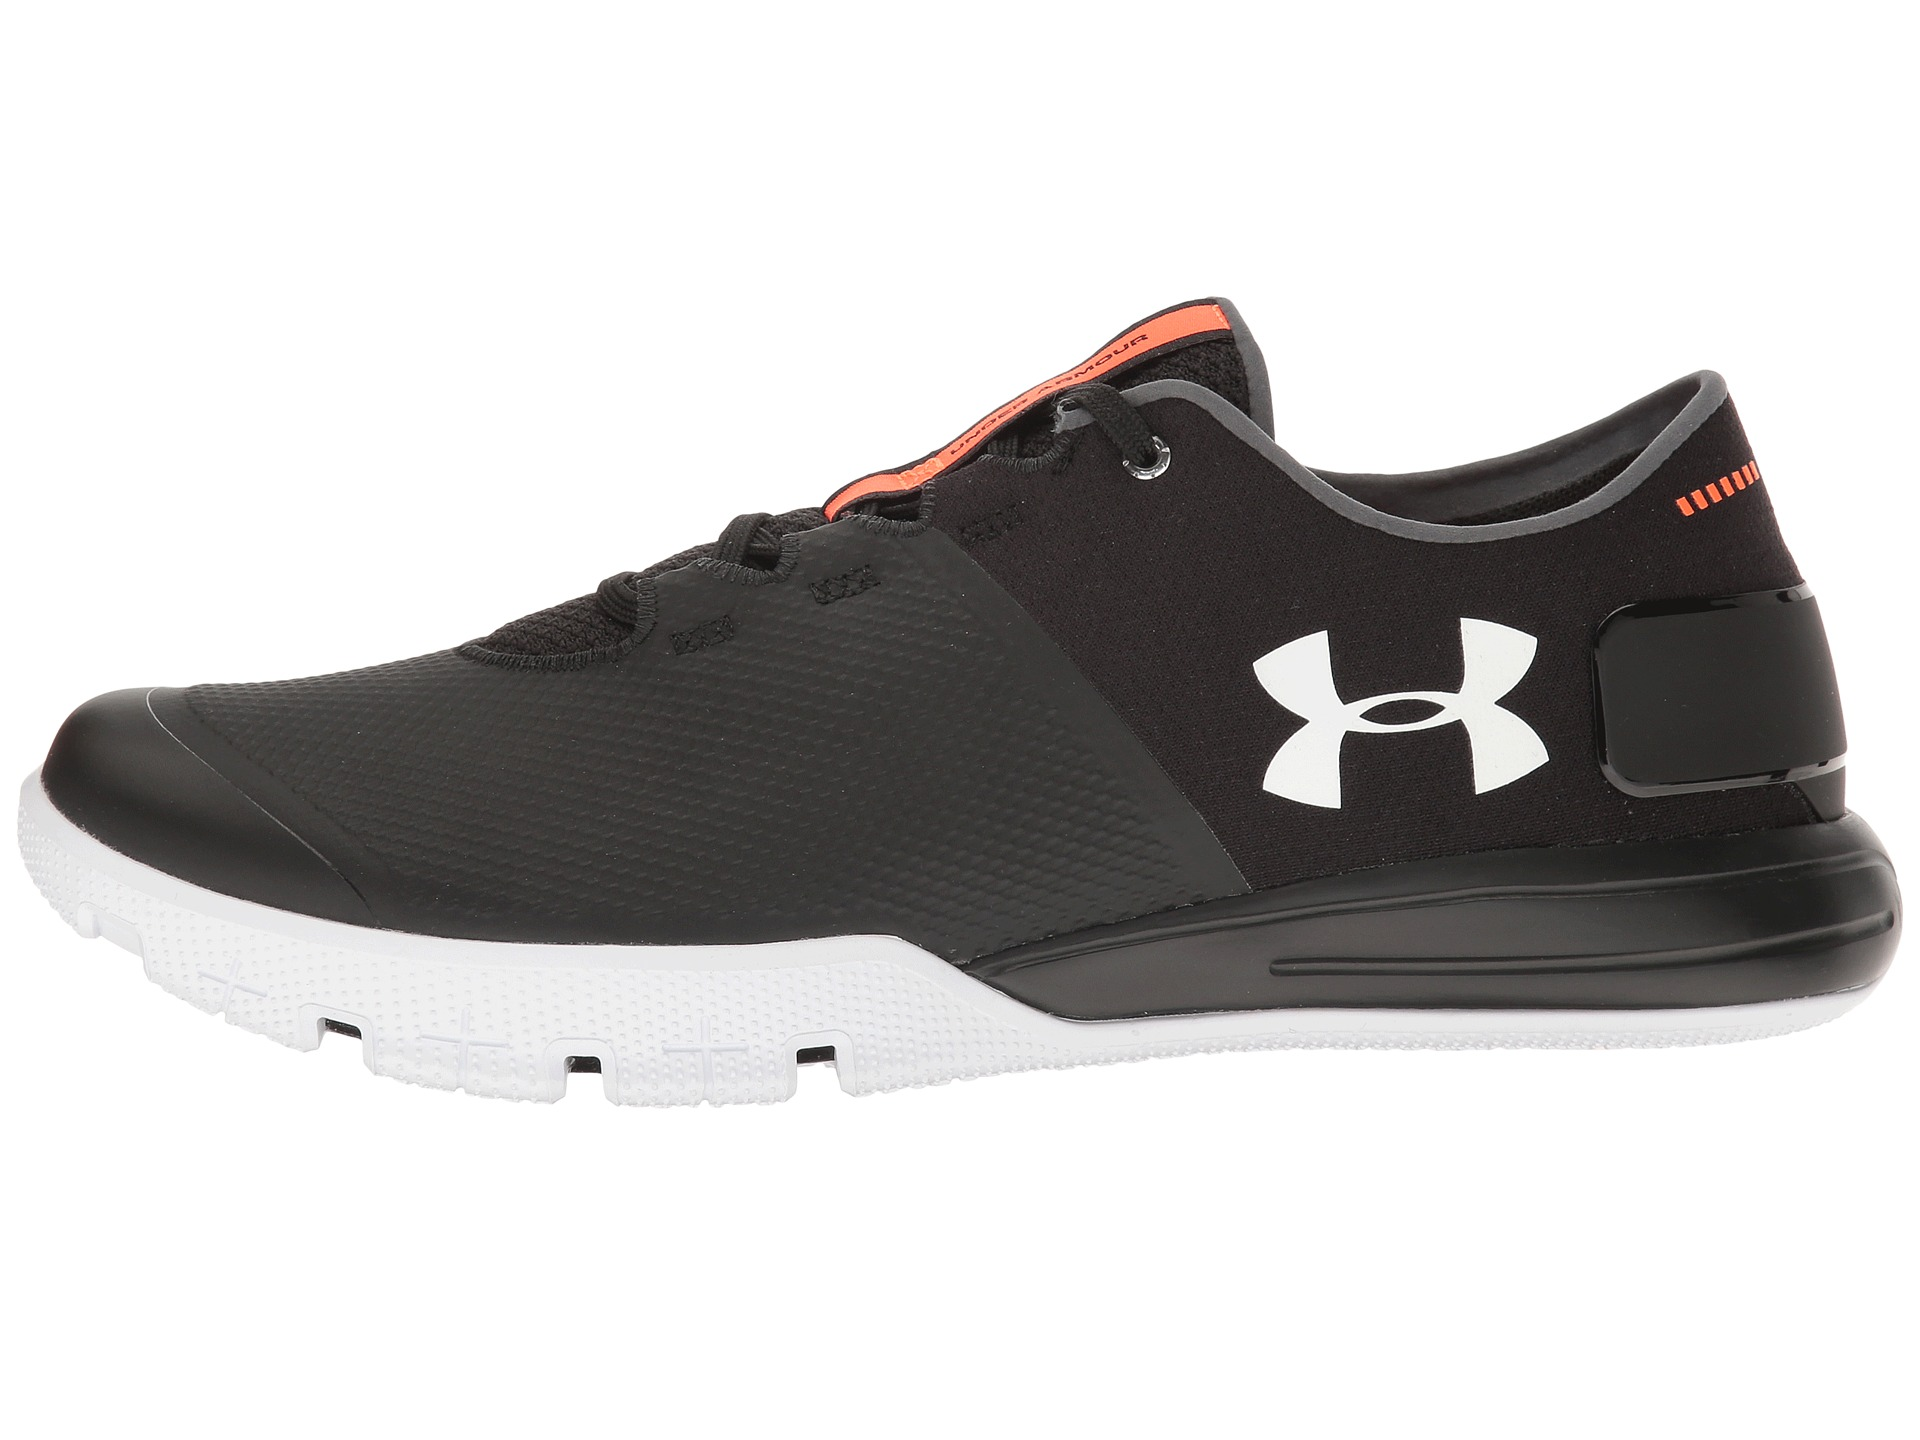 under armor crossfit shoes cheap   OFF45% The Largest Catalog Discounts f20227896